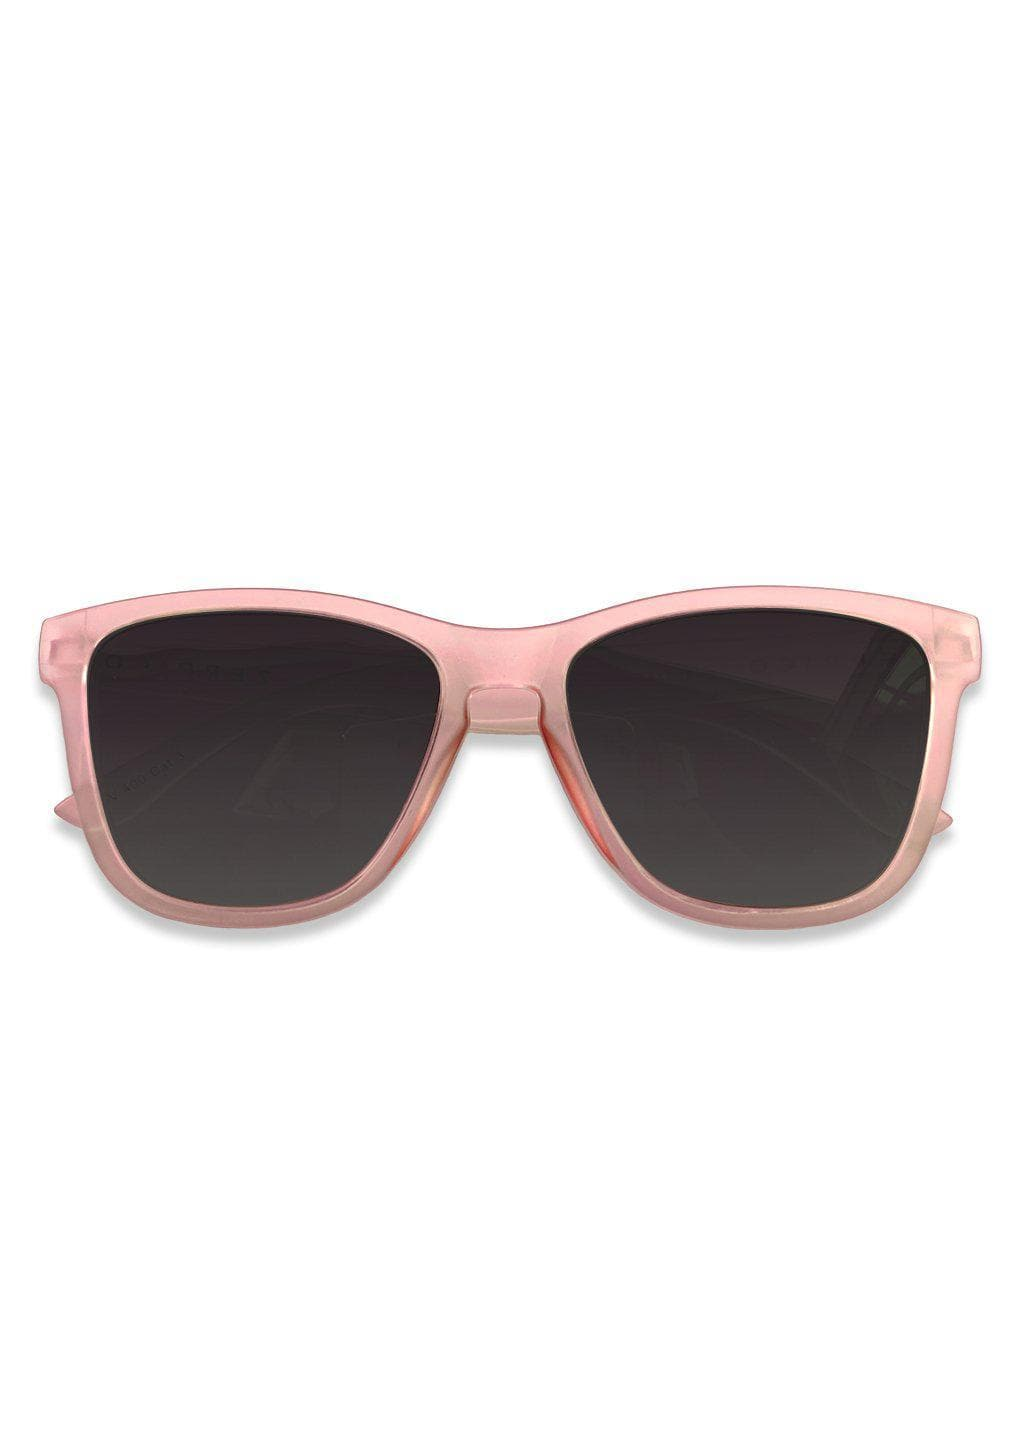 Our Mood V2 is an improved version of our last wayfarers. Plastic body for great quality and durabilty. This is Orchid with pink frame and black lenses.